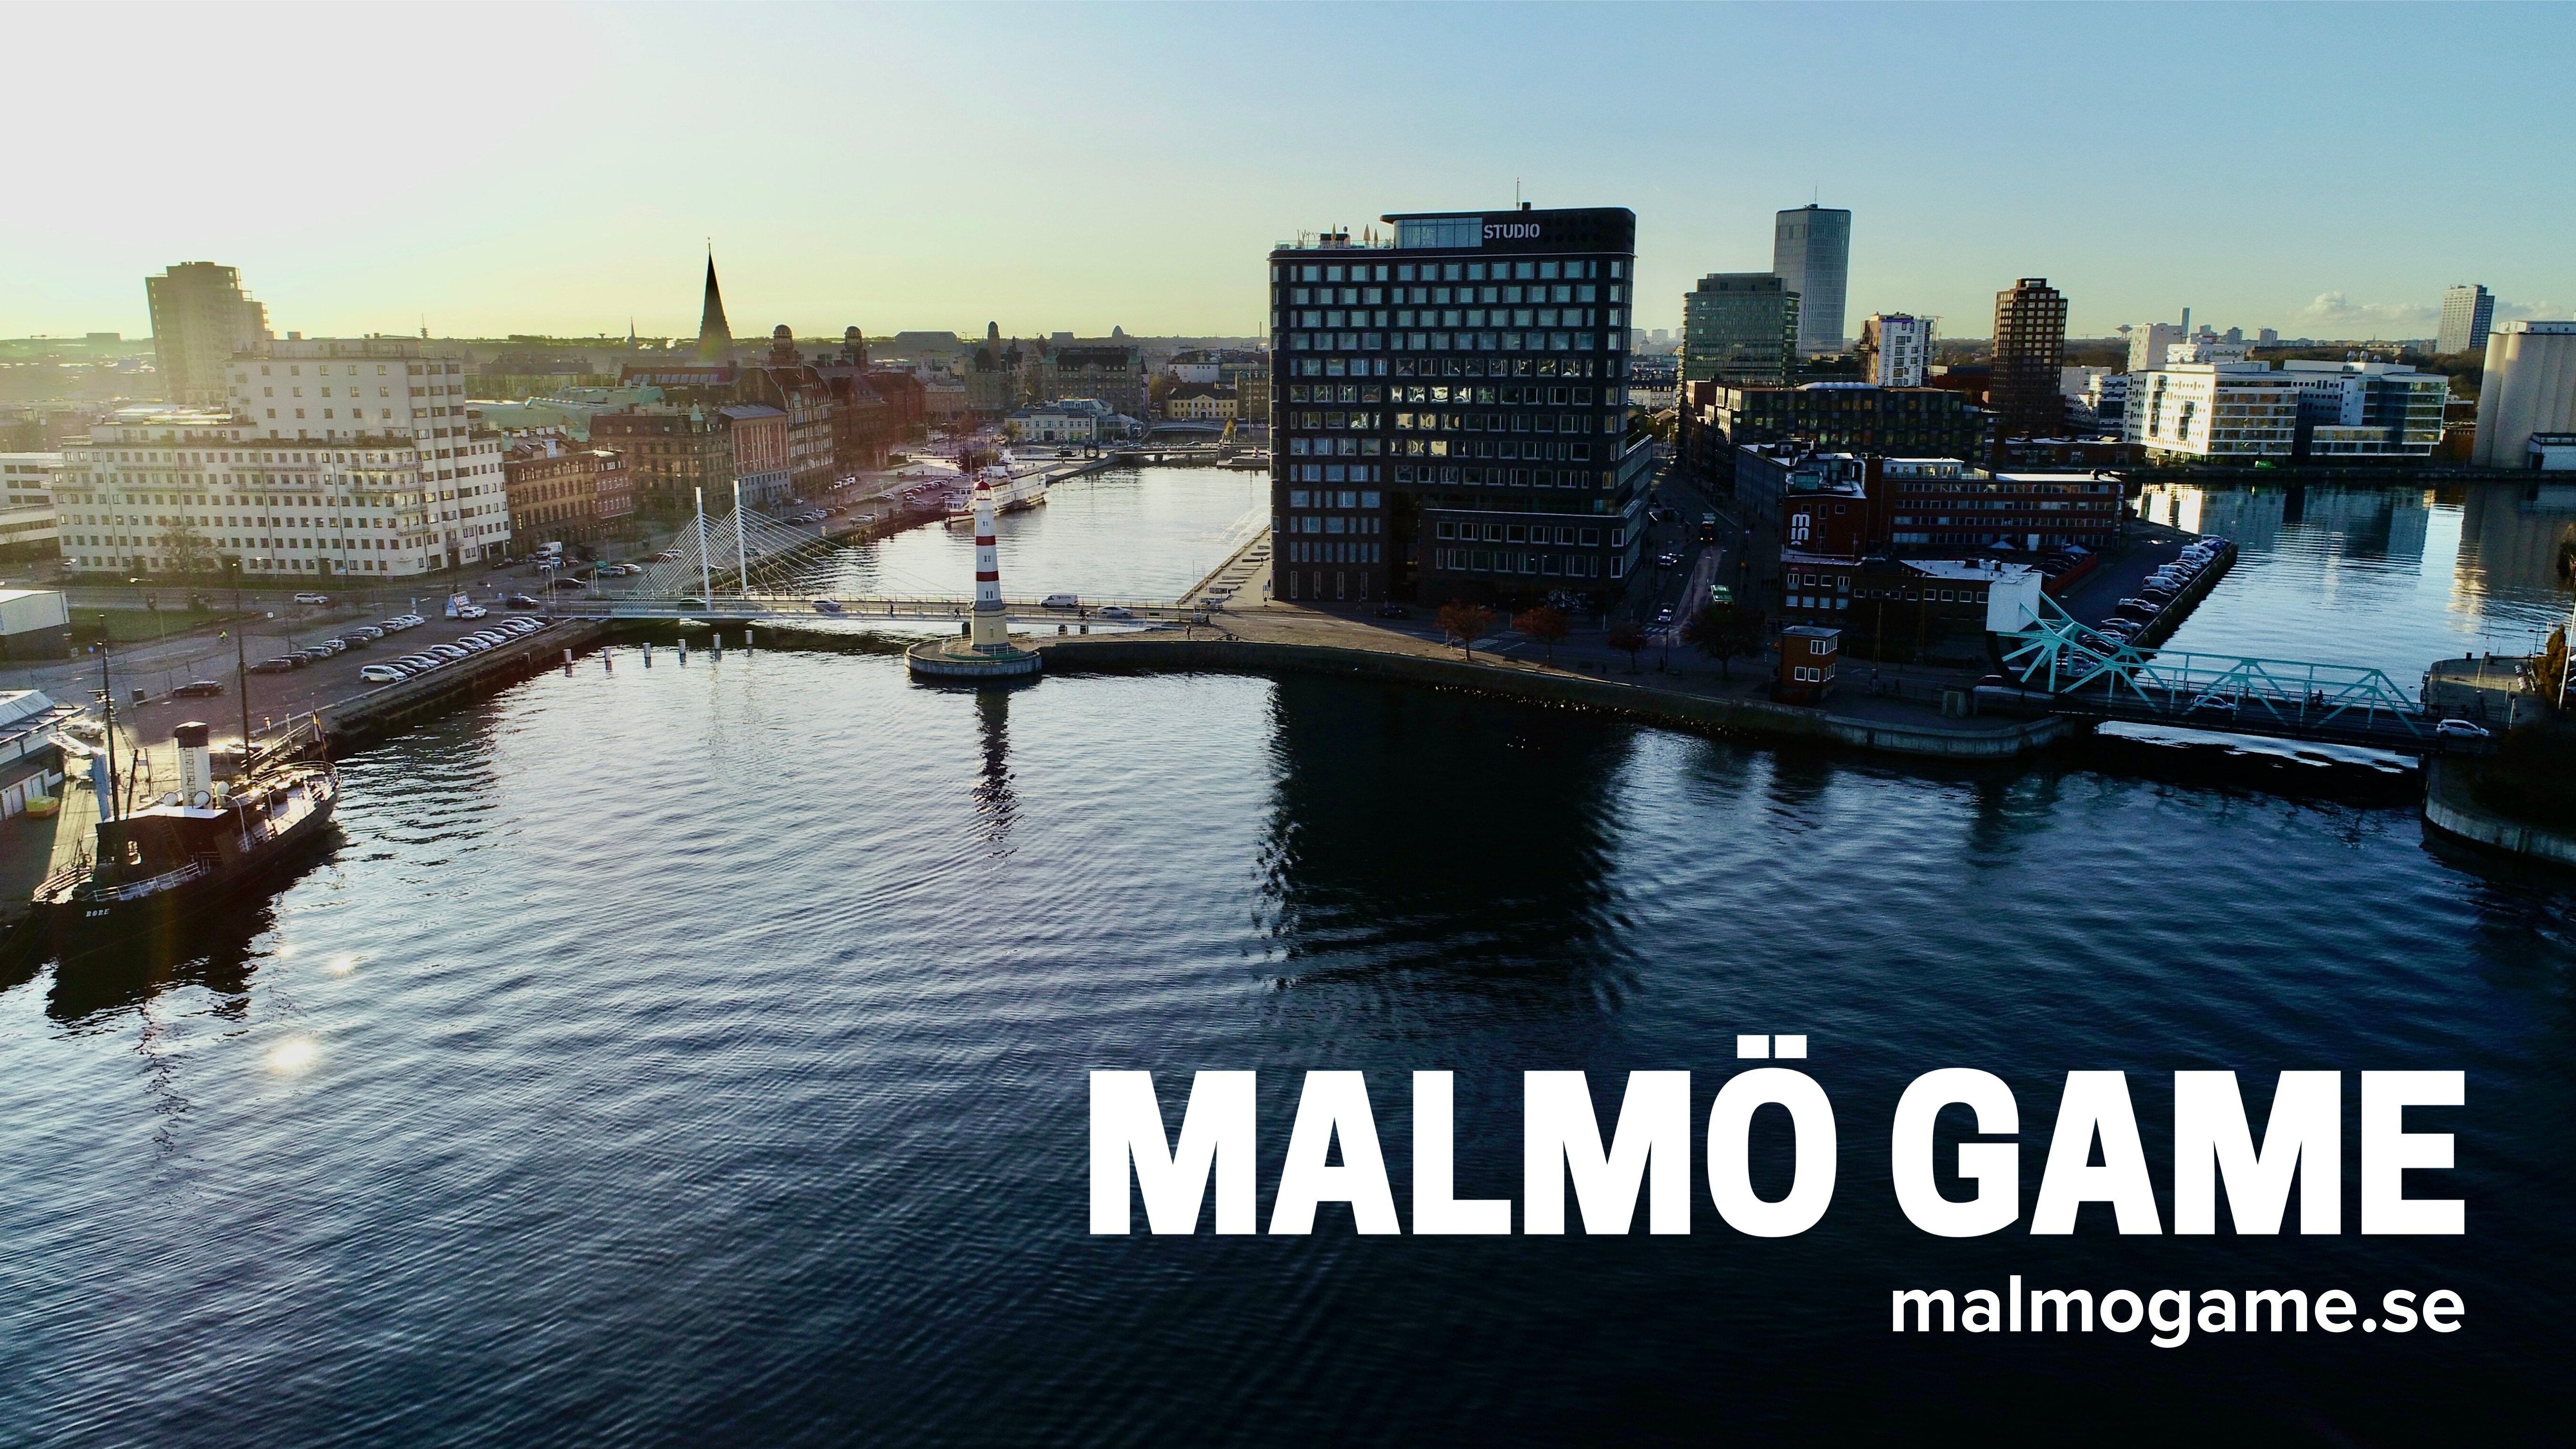 We are Malmö Game - Esports. Gaming. Streaming. - @malmogame - malmogame.se